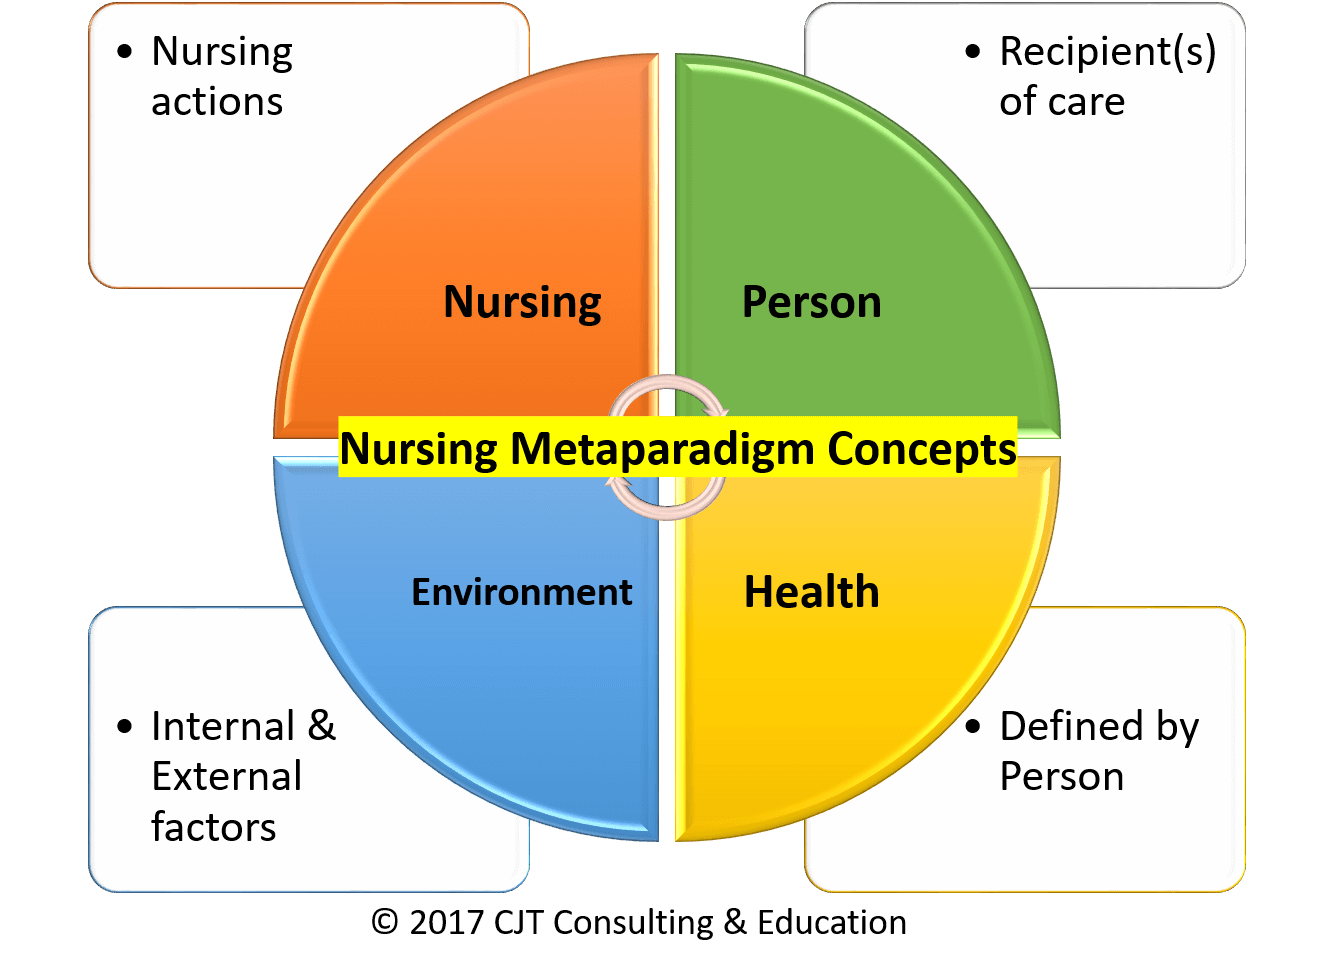 nursing metaparadigm concepts